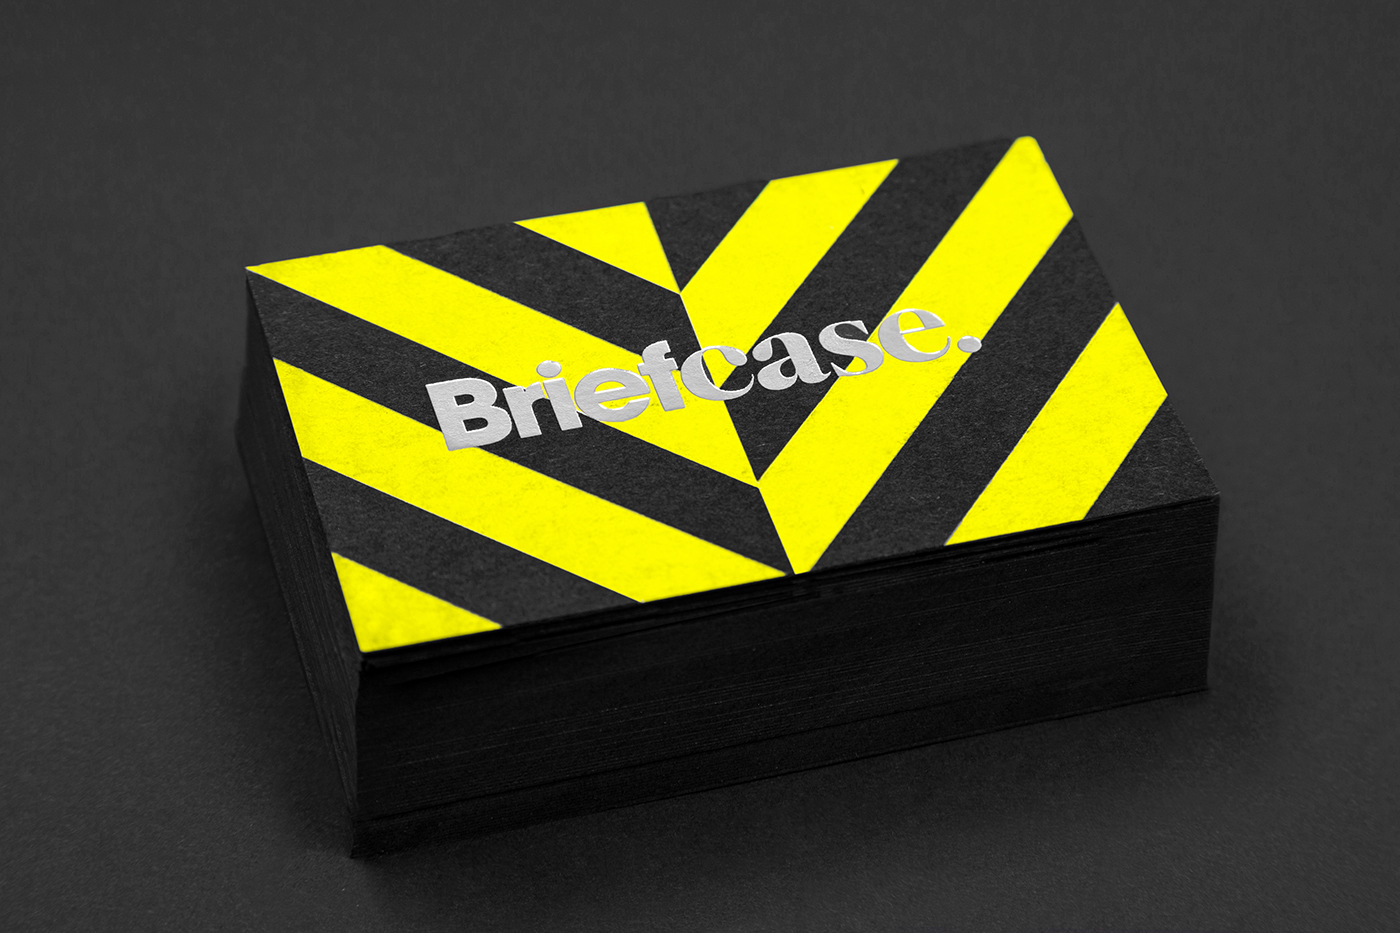 Briefcase Identity by Anagrama (Business Cards)